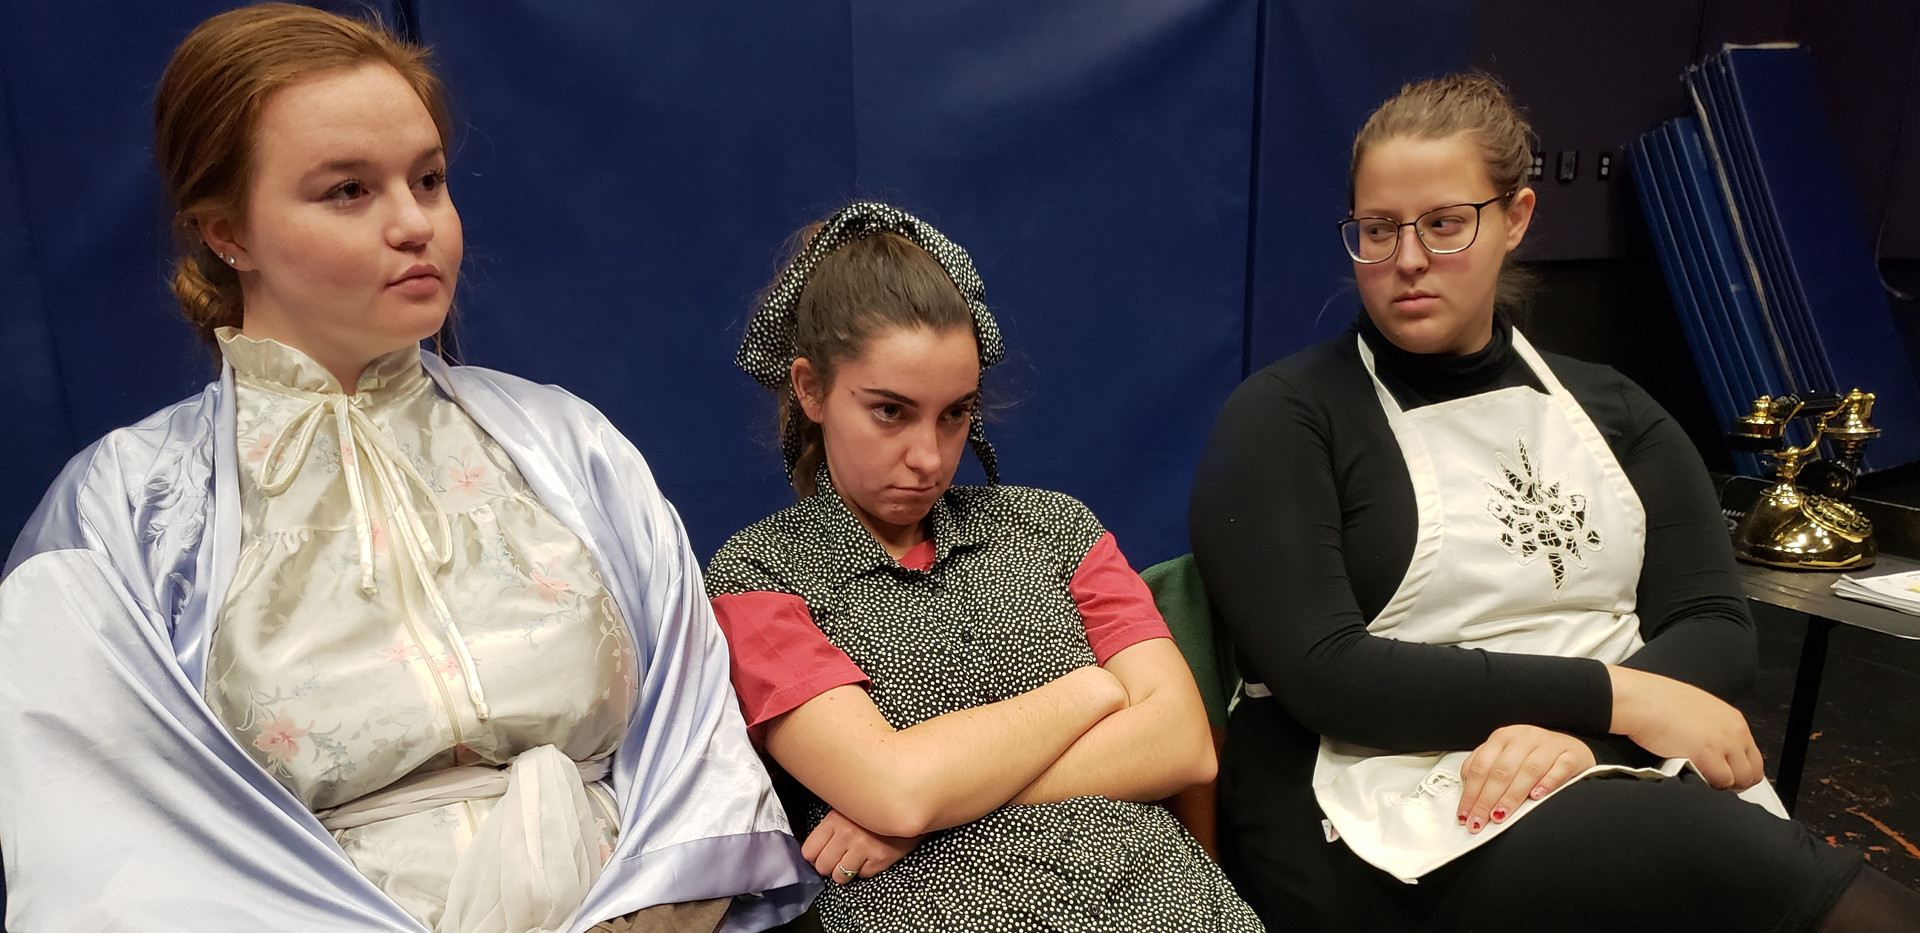 Promotional cast photo during dress rehearsal. From left to right, Sydney Kendrick (Mrs. Tilford, Sarah Hogan (Mary), and Emma Holland (Agatha).